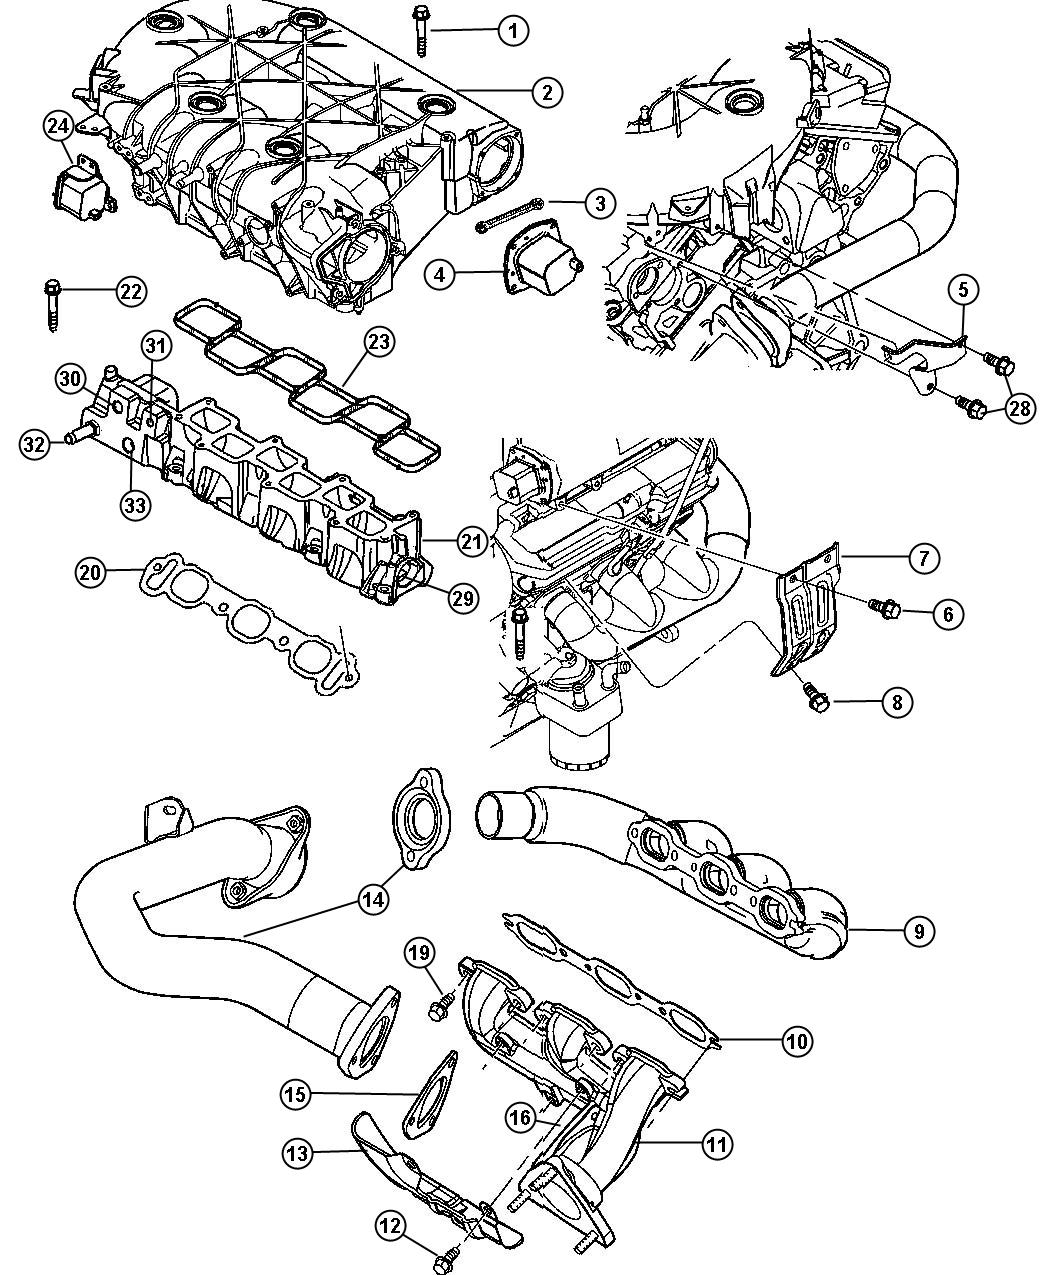 Chrysler Pacifica Parts Diagram On Image 2004 Chrysler Pacifica